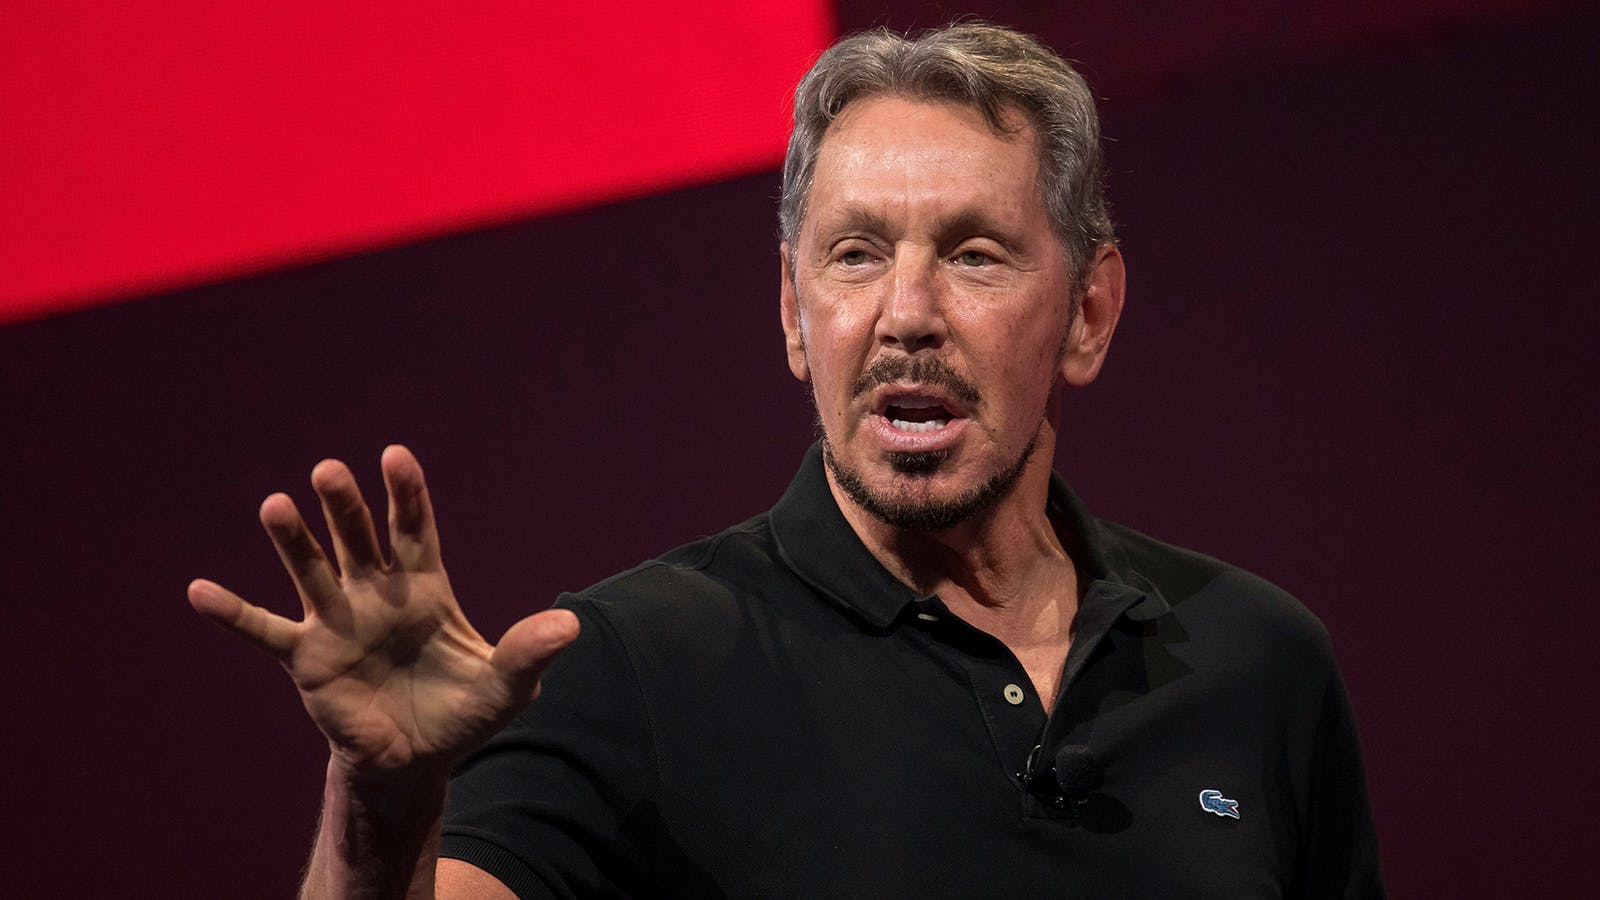 Oracle co-founder Larry Ellison. Photo: Bloomberg